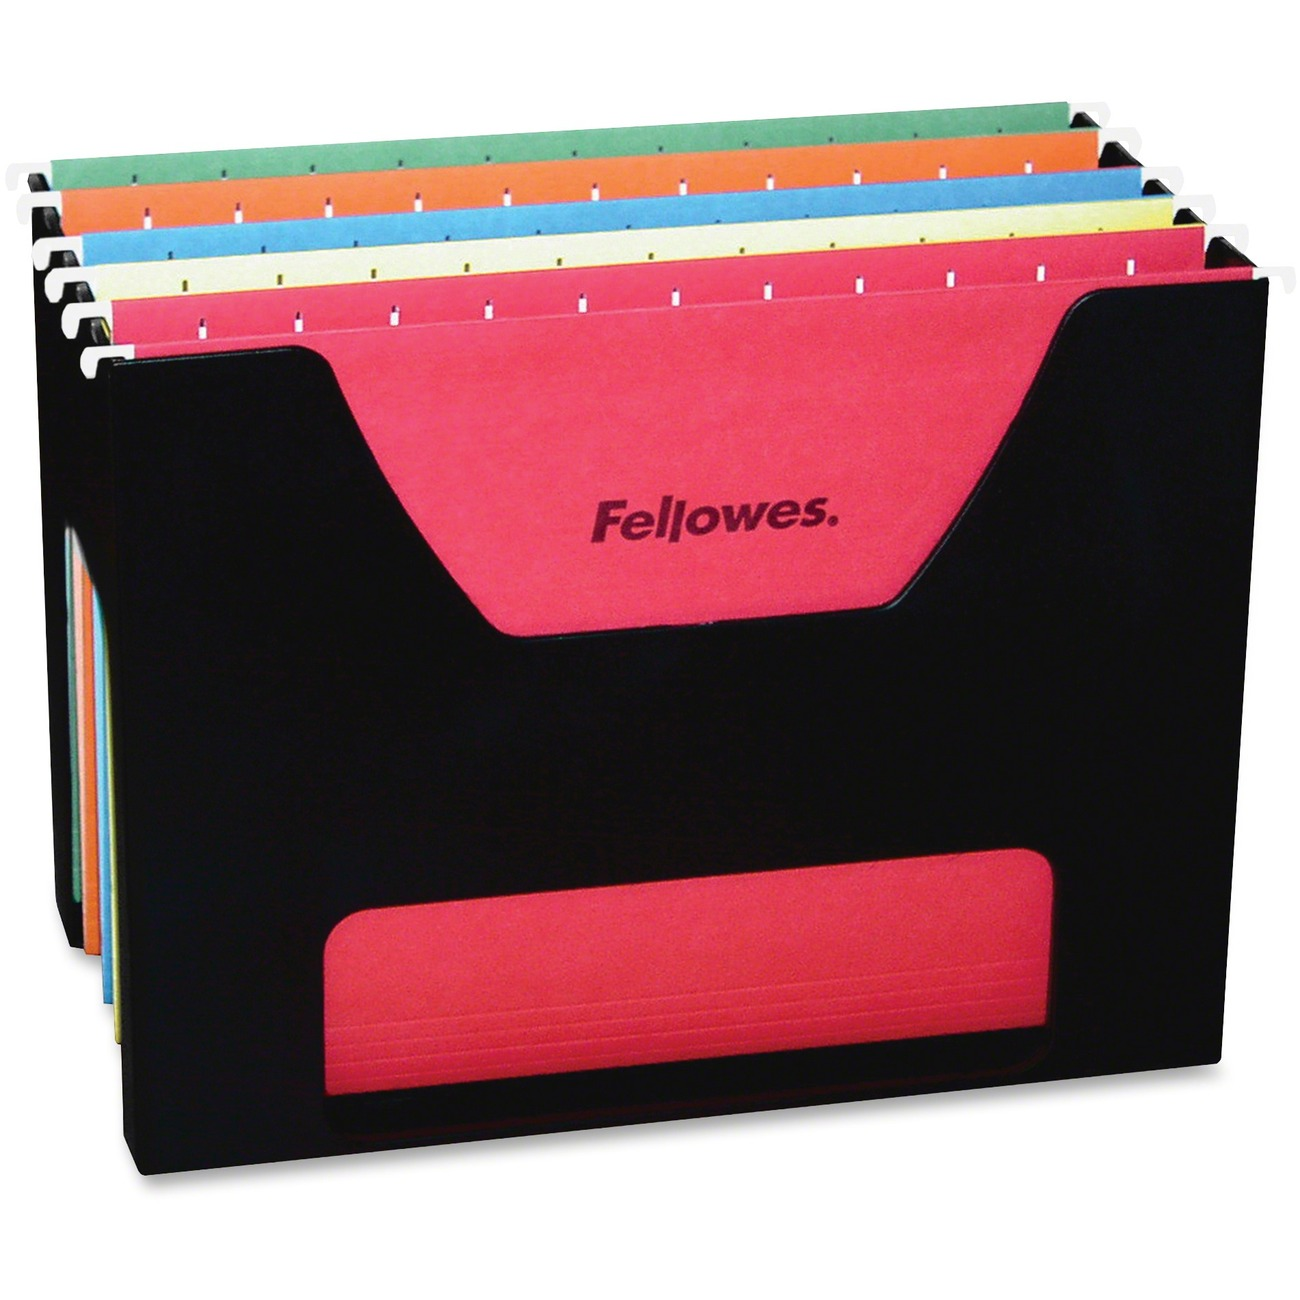 Its Compact Size Fits Perfectly In Desk Drawer Or Filing Cabinet Without Need For A Hanging Folder Frame Your